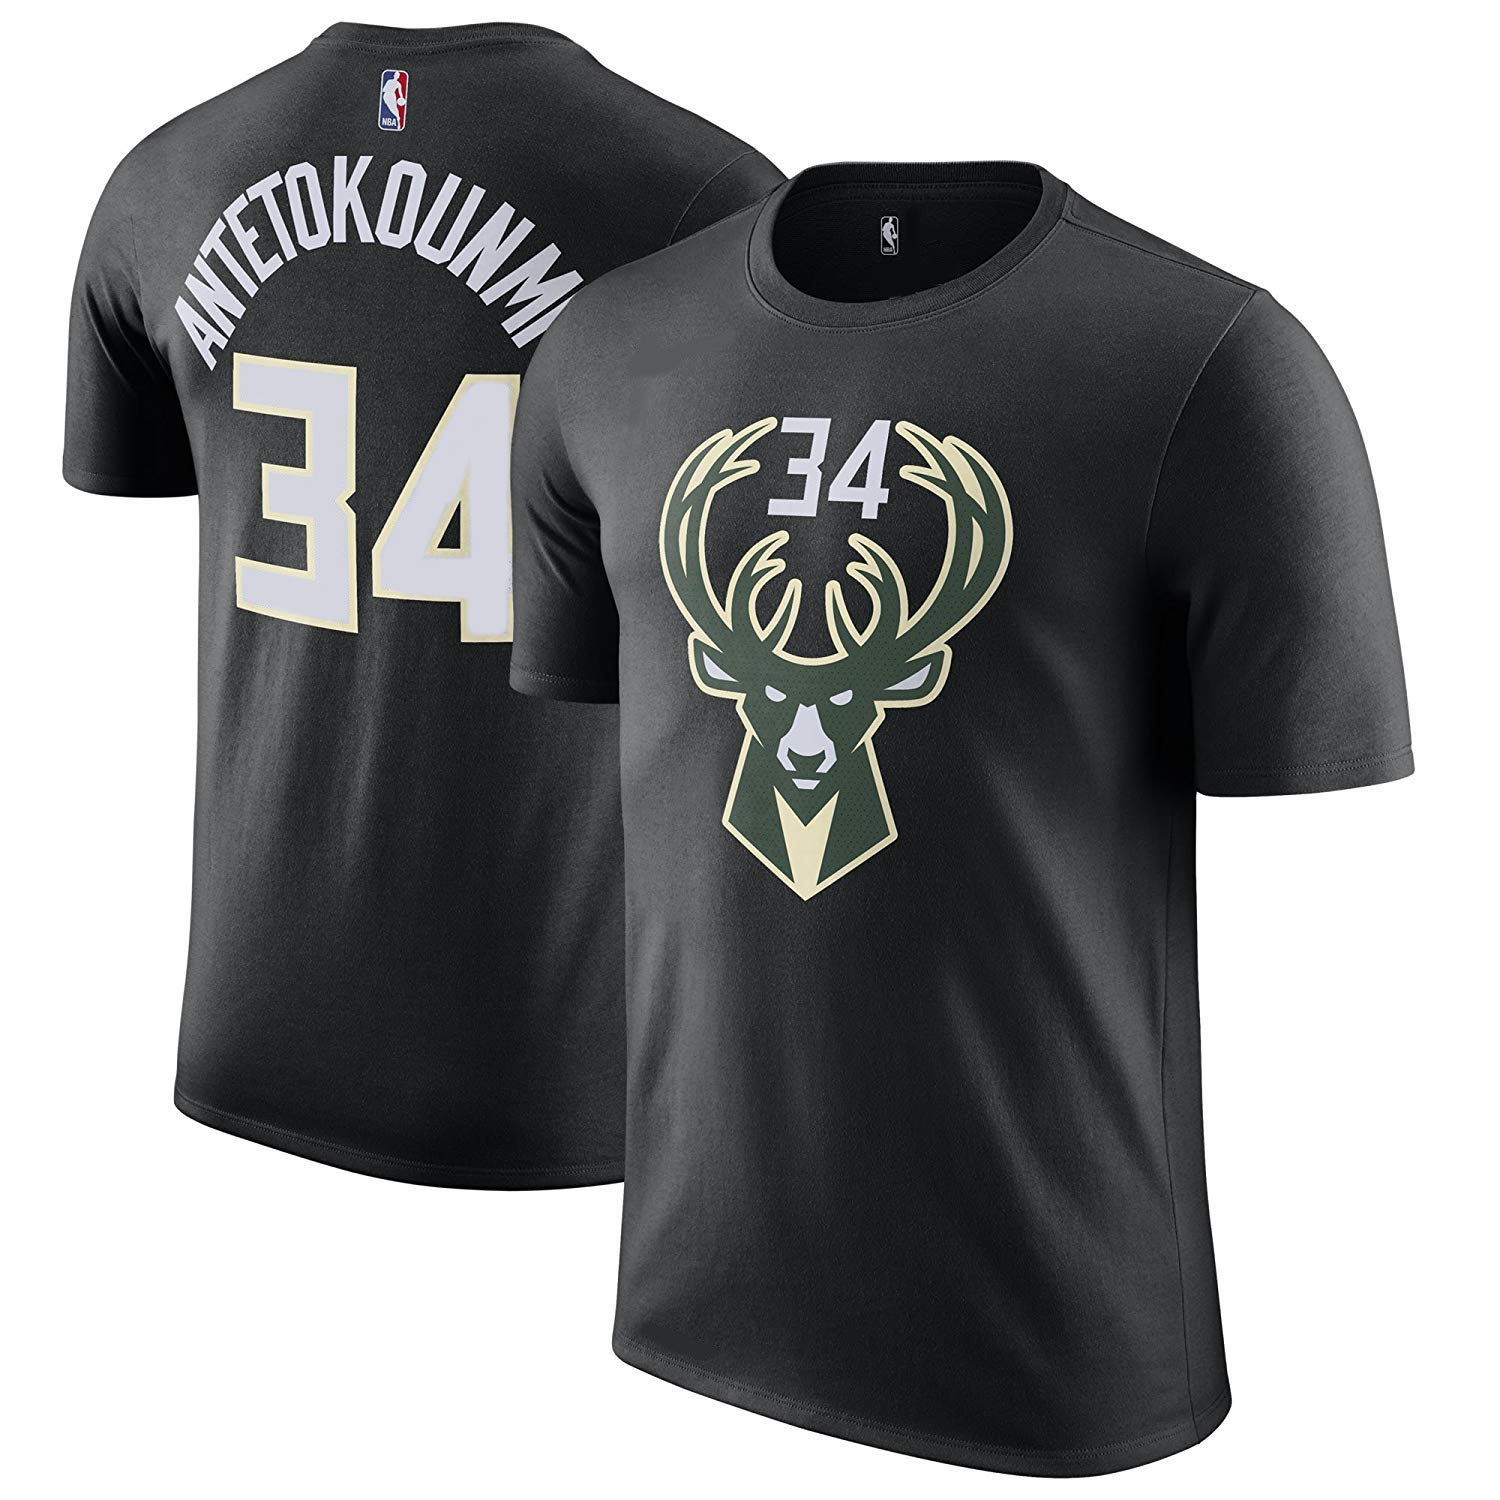 e4d606b1b Amazon.com : Outerstuff Giannis Antetokounmpo Milwaukee Bucks NBA Youth 8-20  Boys Black Alternate Official Player Name & Number T-Shirt (Youth Small 8)  ...